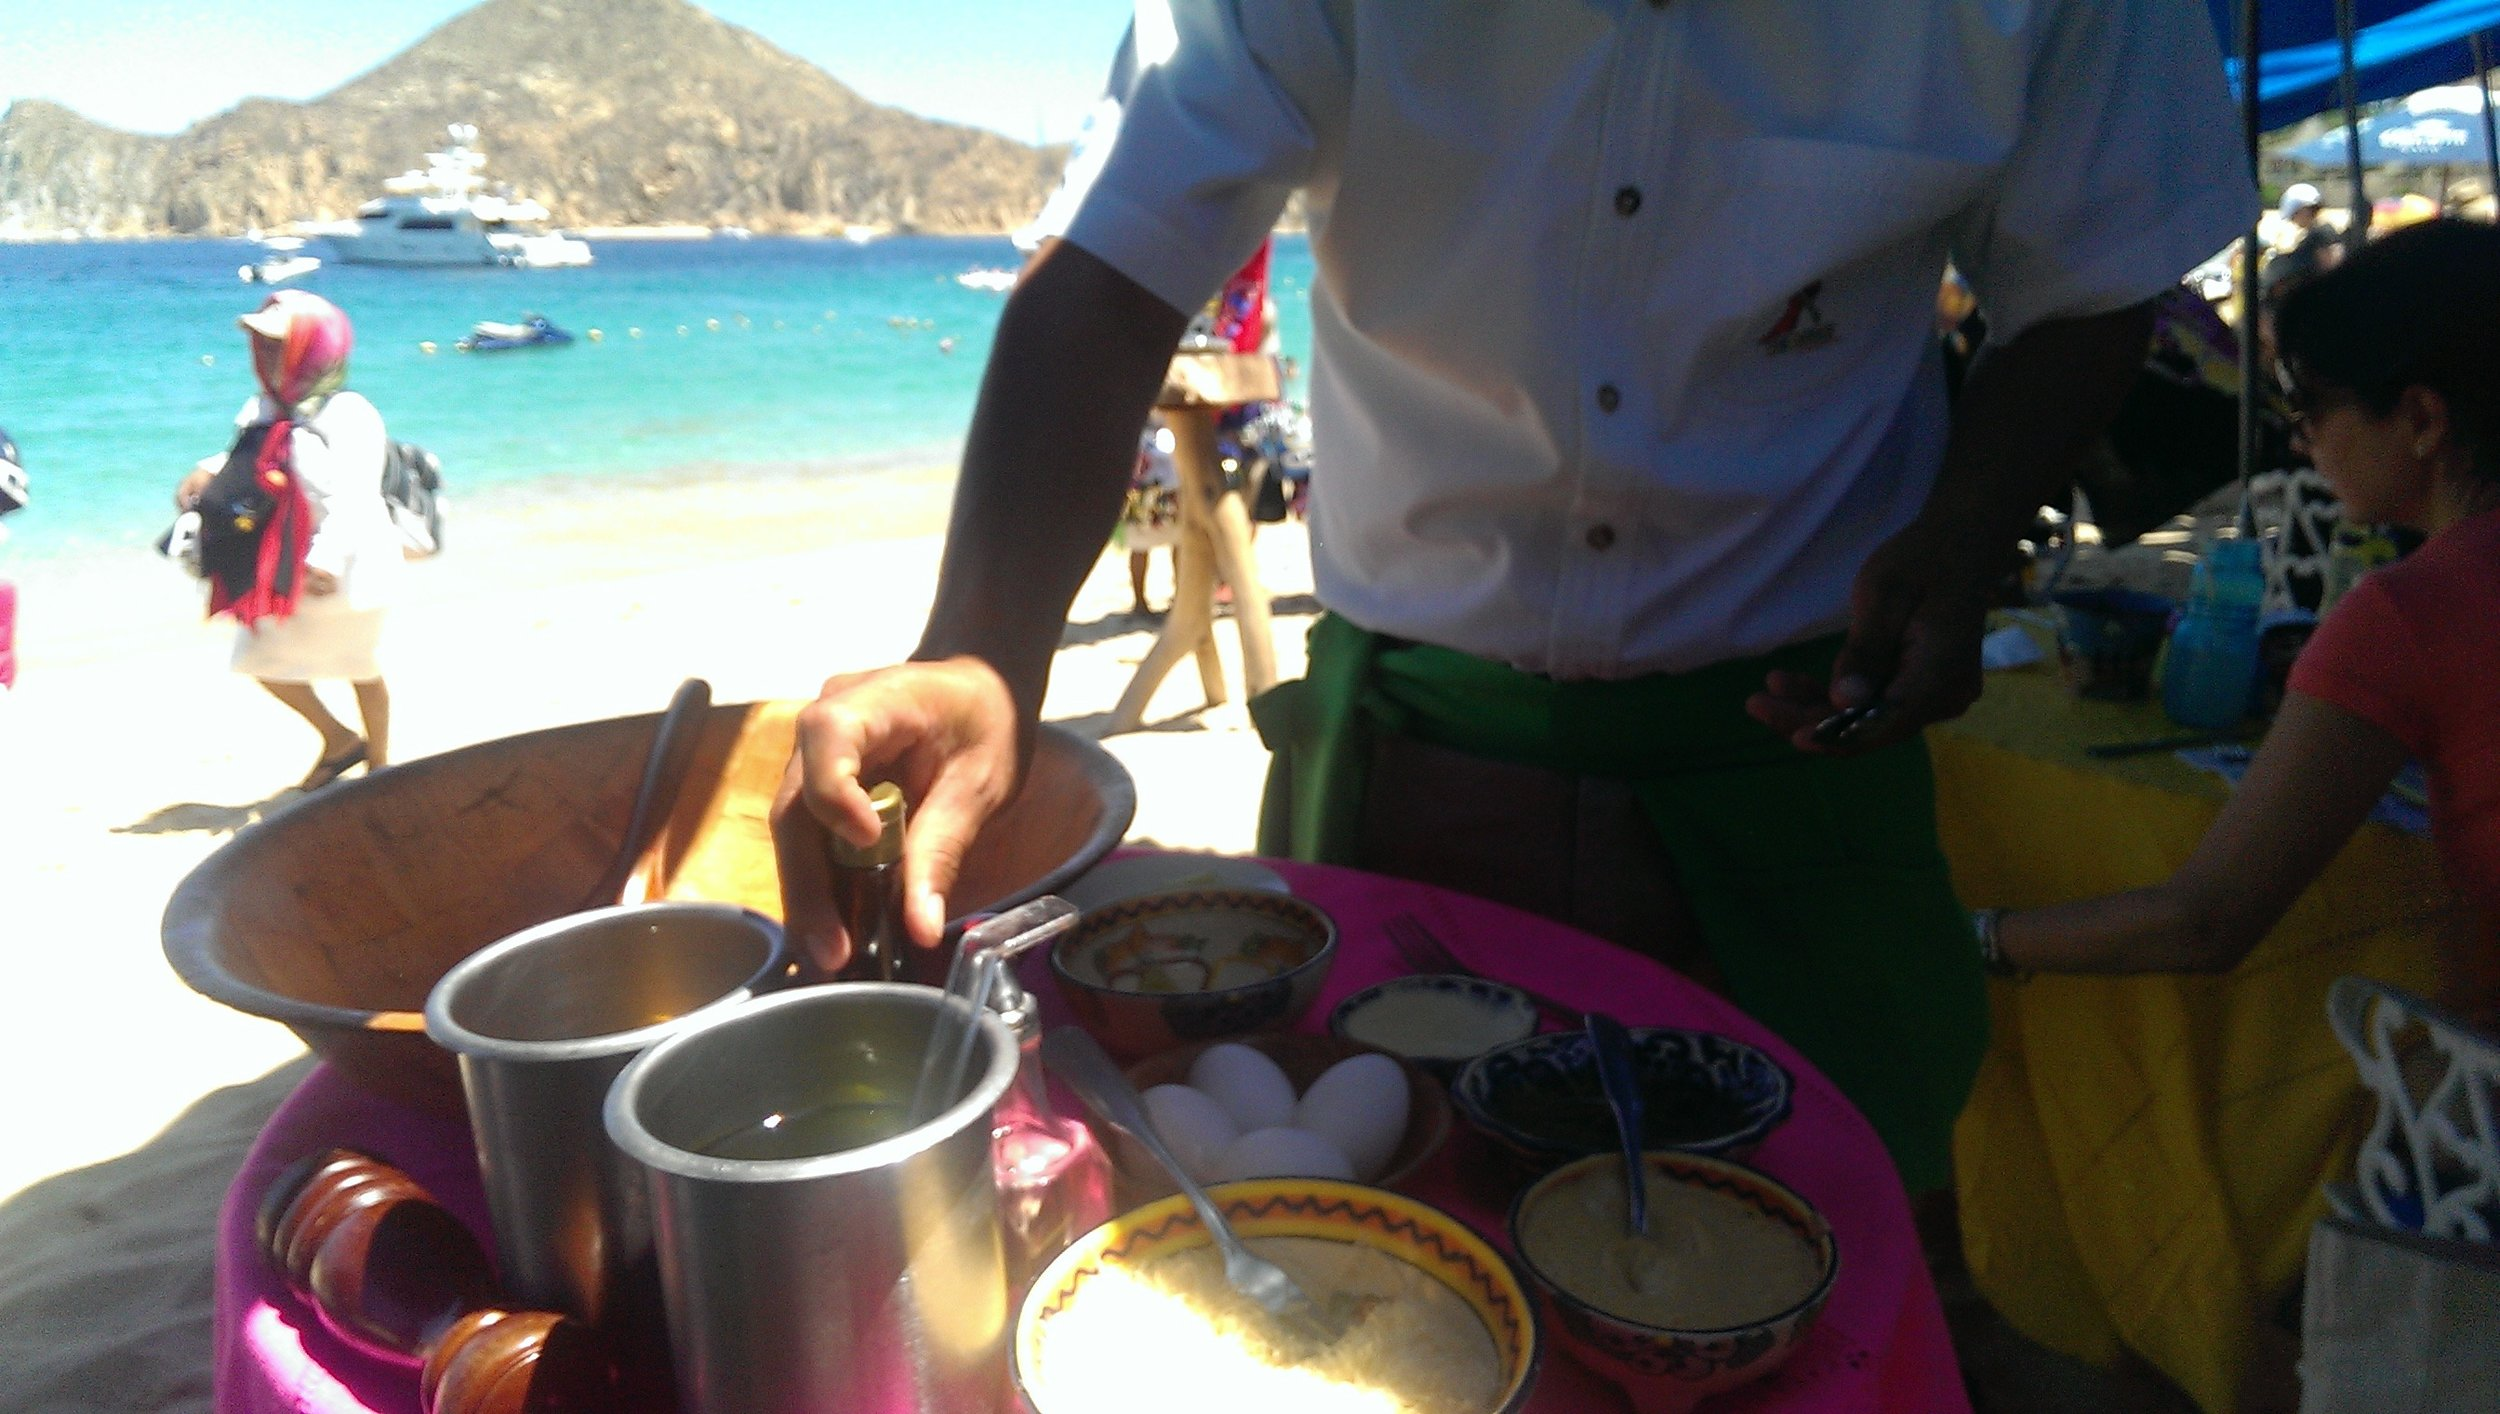 Caesar Salads made table side at The Office in Cabo San Lucas, Mexico